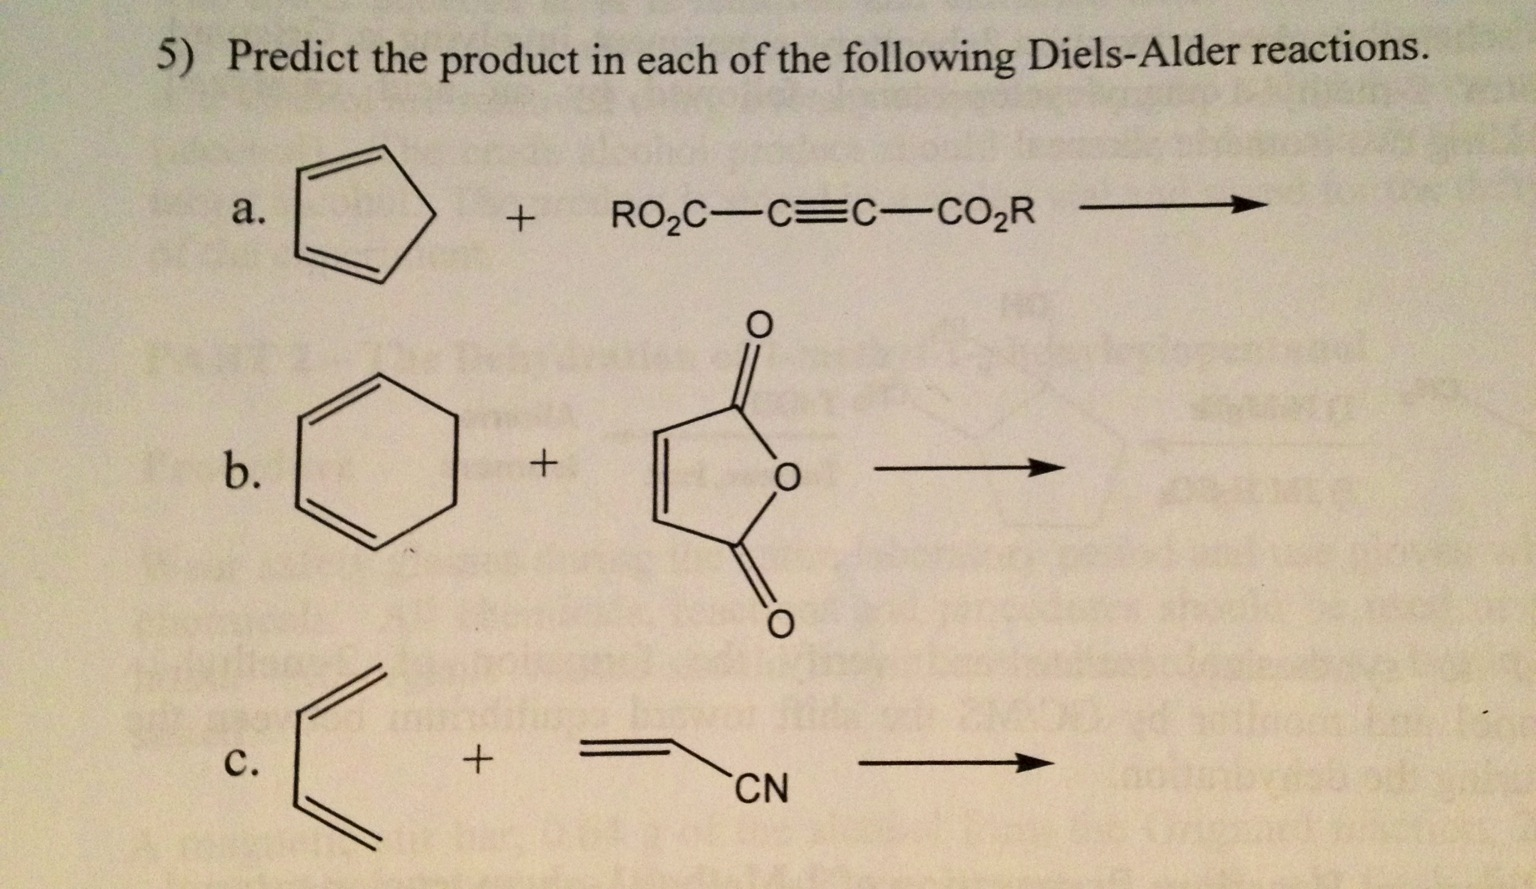 Predict the product in each of the following Diels